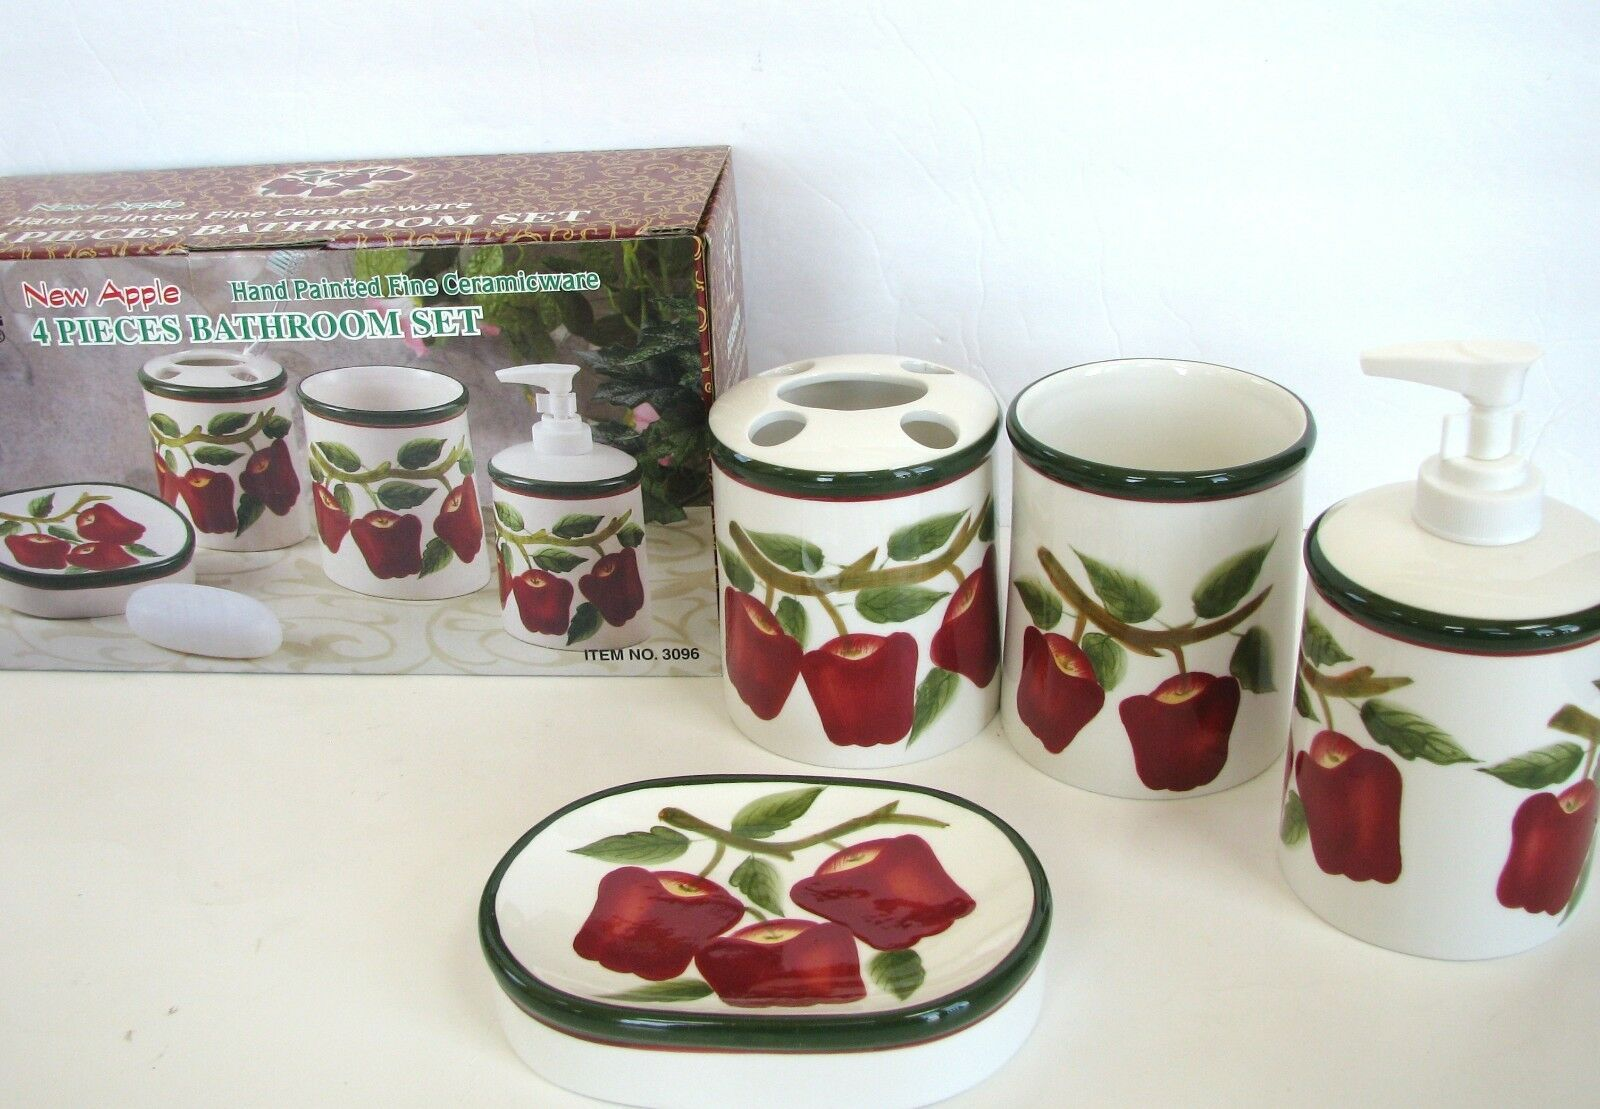 NEW 4 PC NEW APPLE HANDPAINTED CERAMIC SOAP DISPENSER,DISH,TOOTHBRUSH,TUMBLER